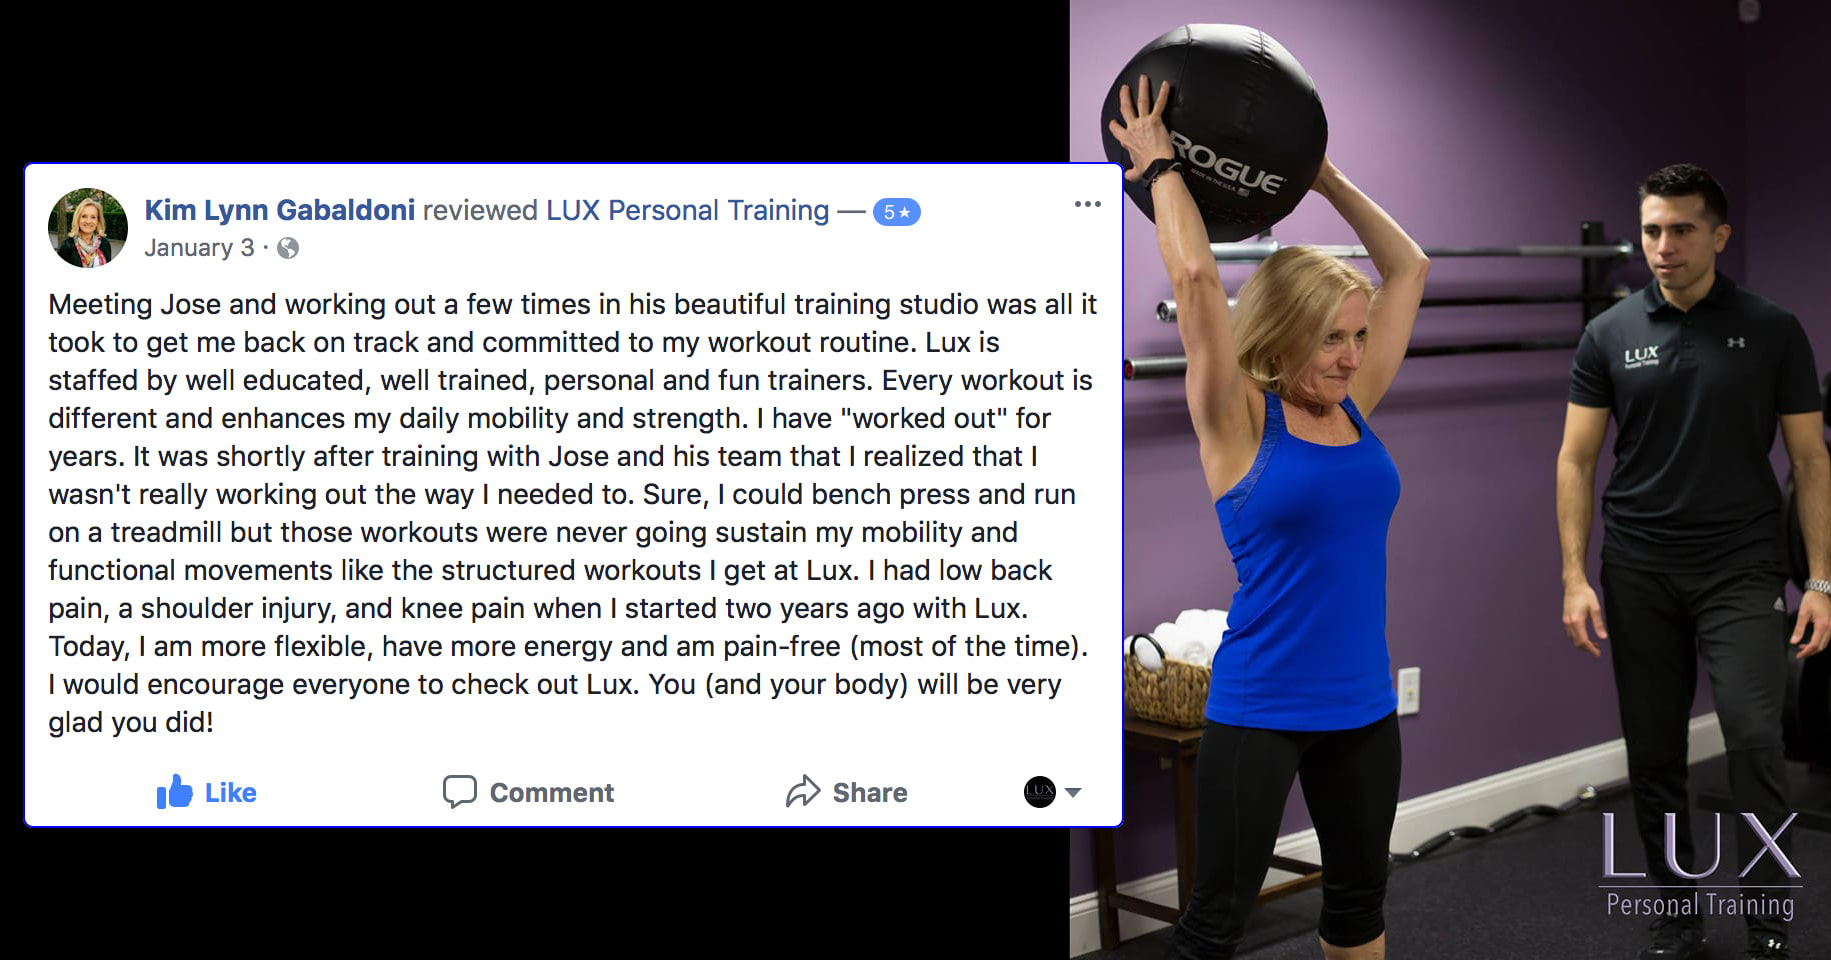 LUX Personal Training Kim